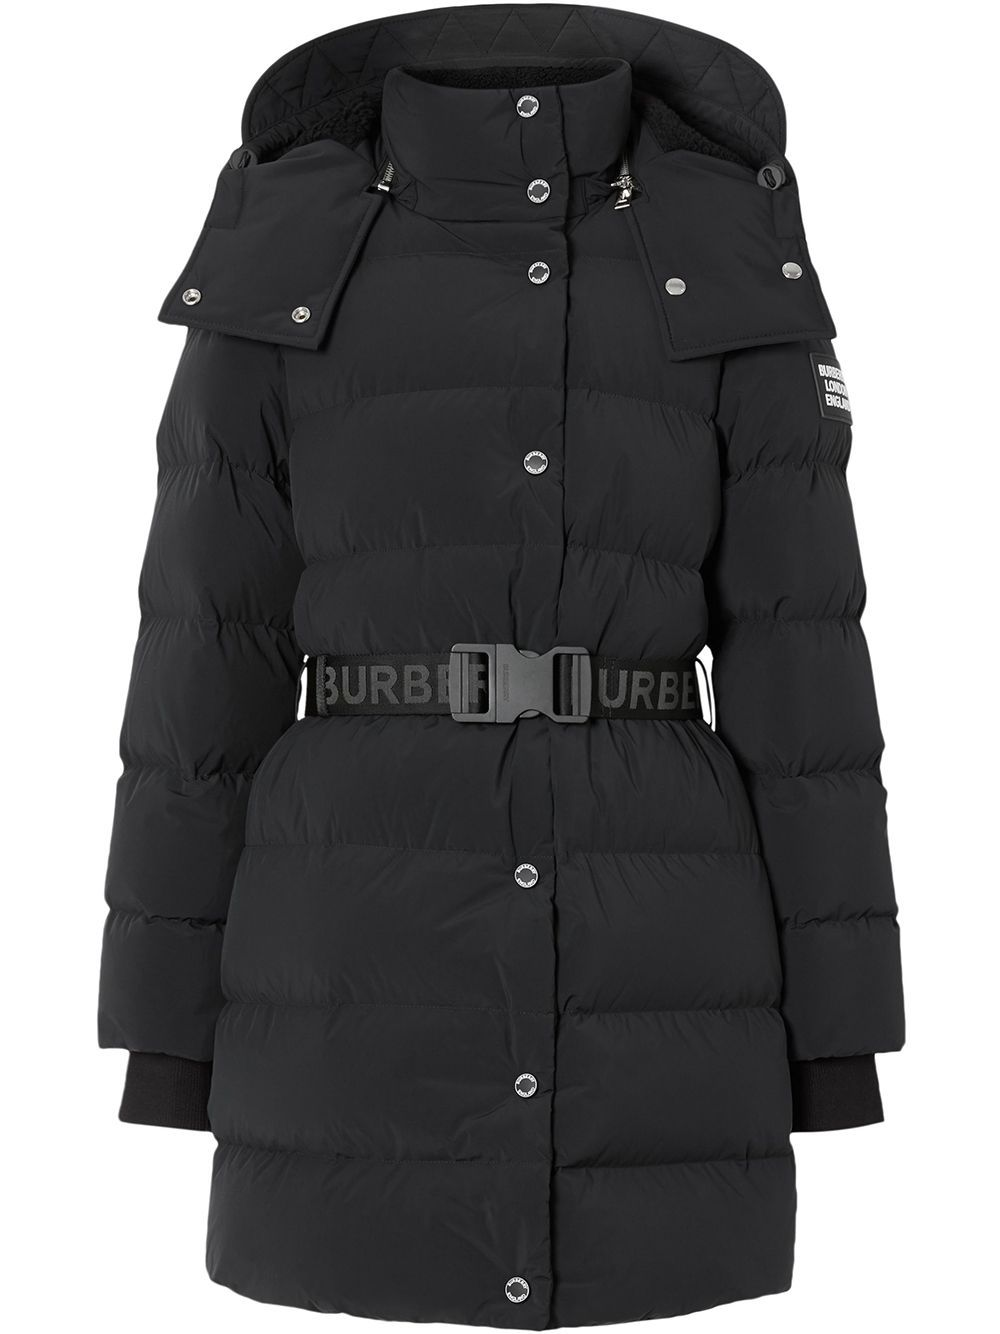 Burberry logo belted puffer jacket Black | Burberry, Down